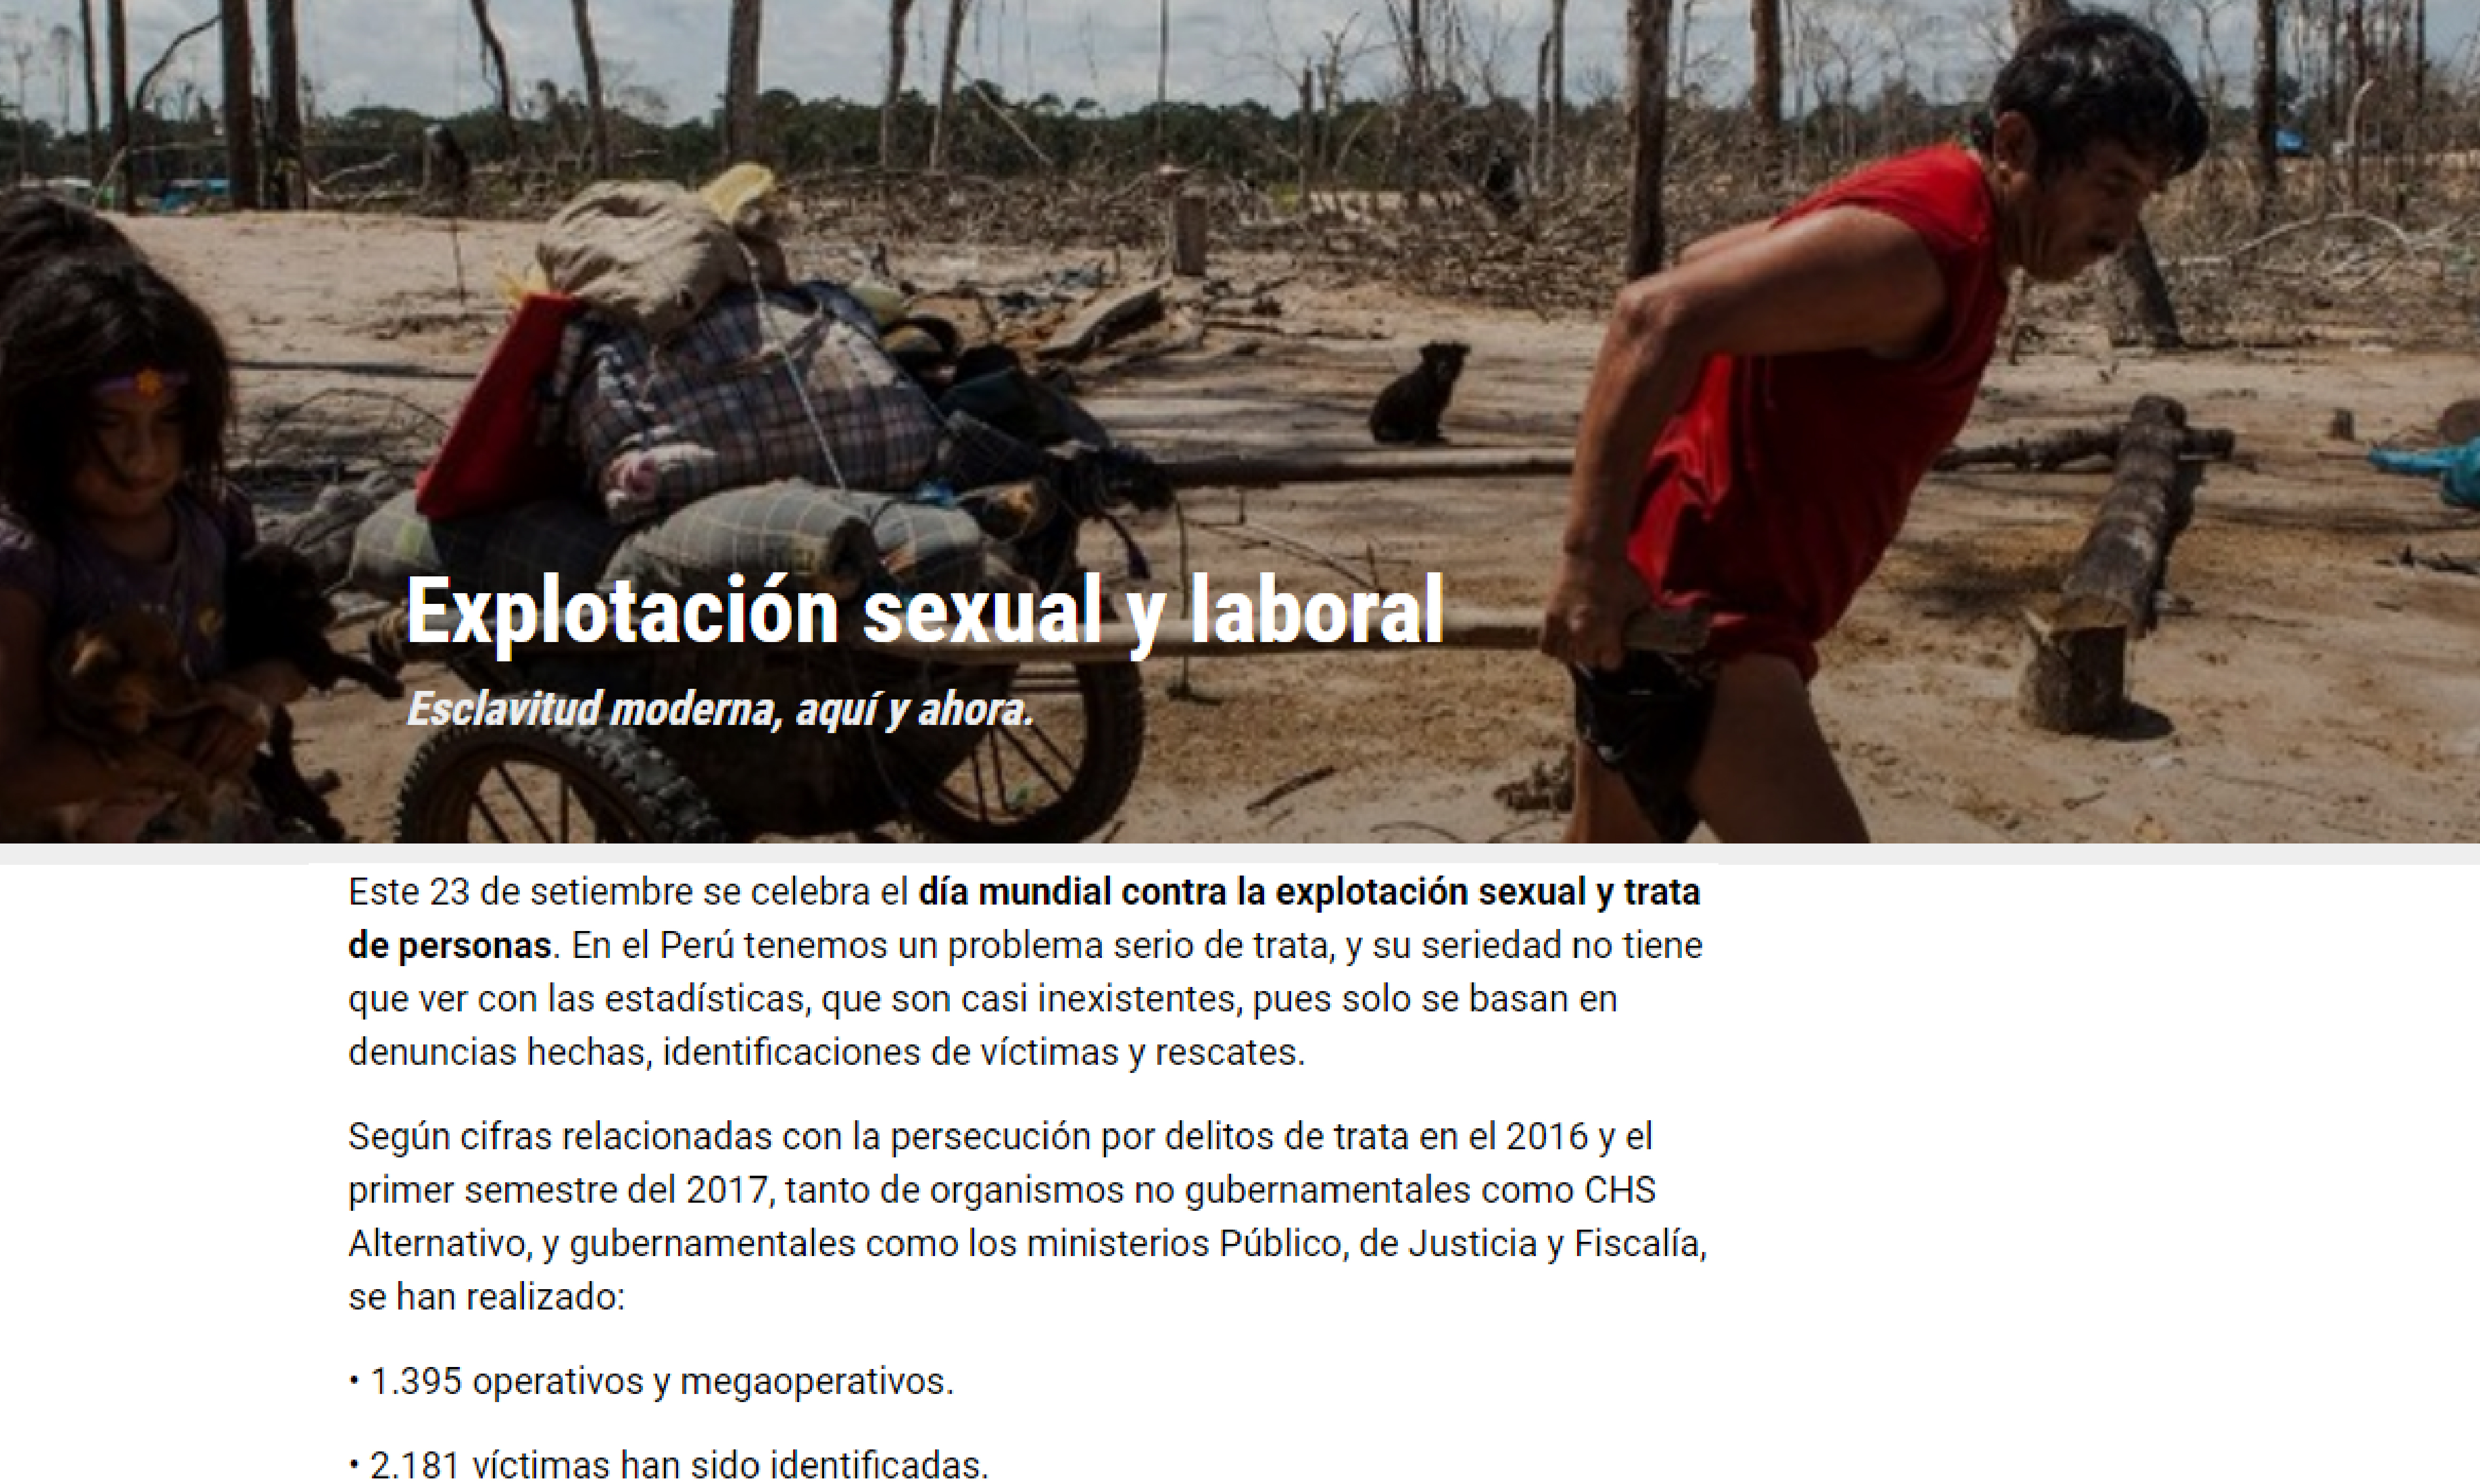 La Mula: Explotación sexual y laboral